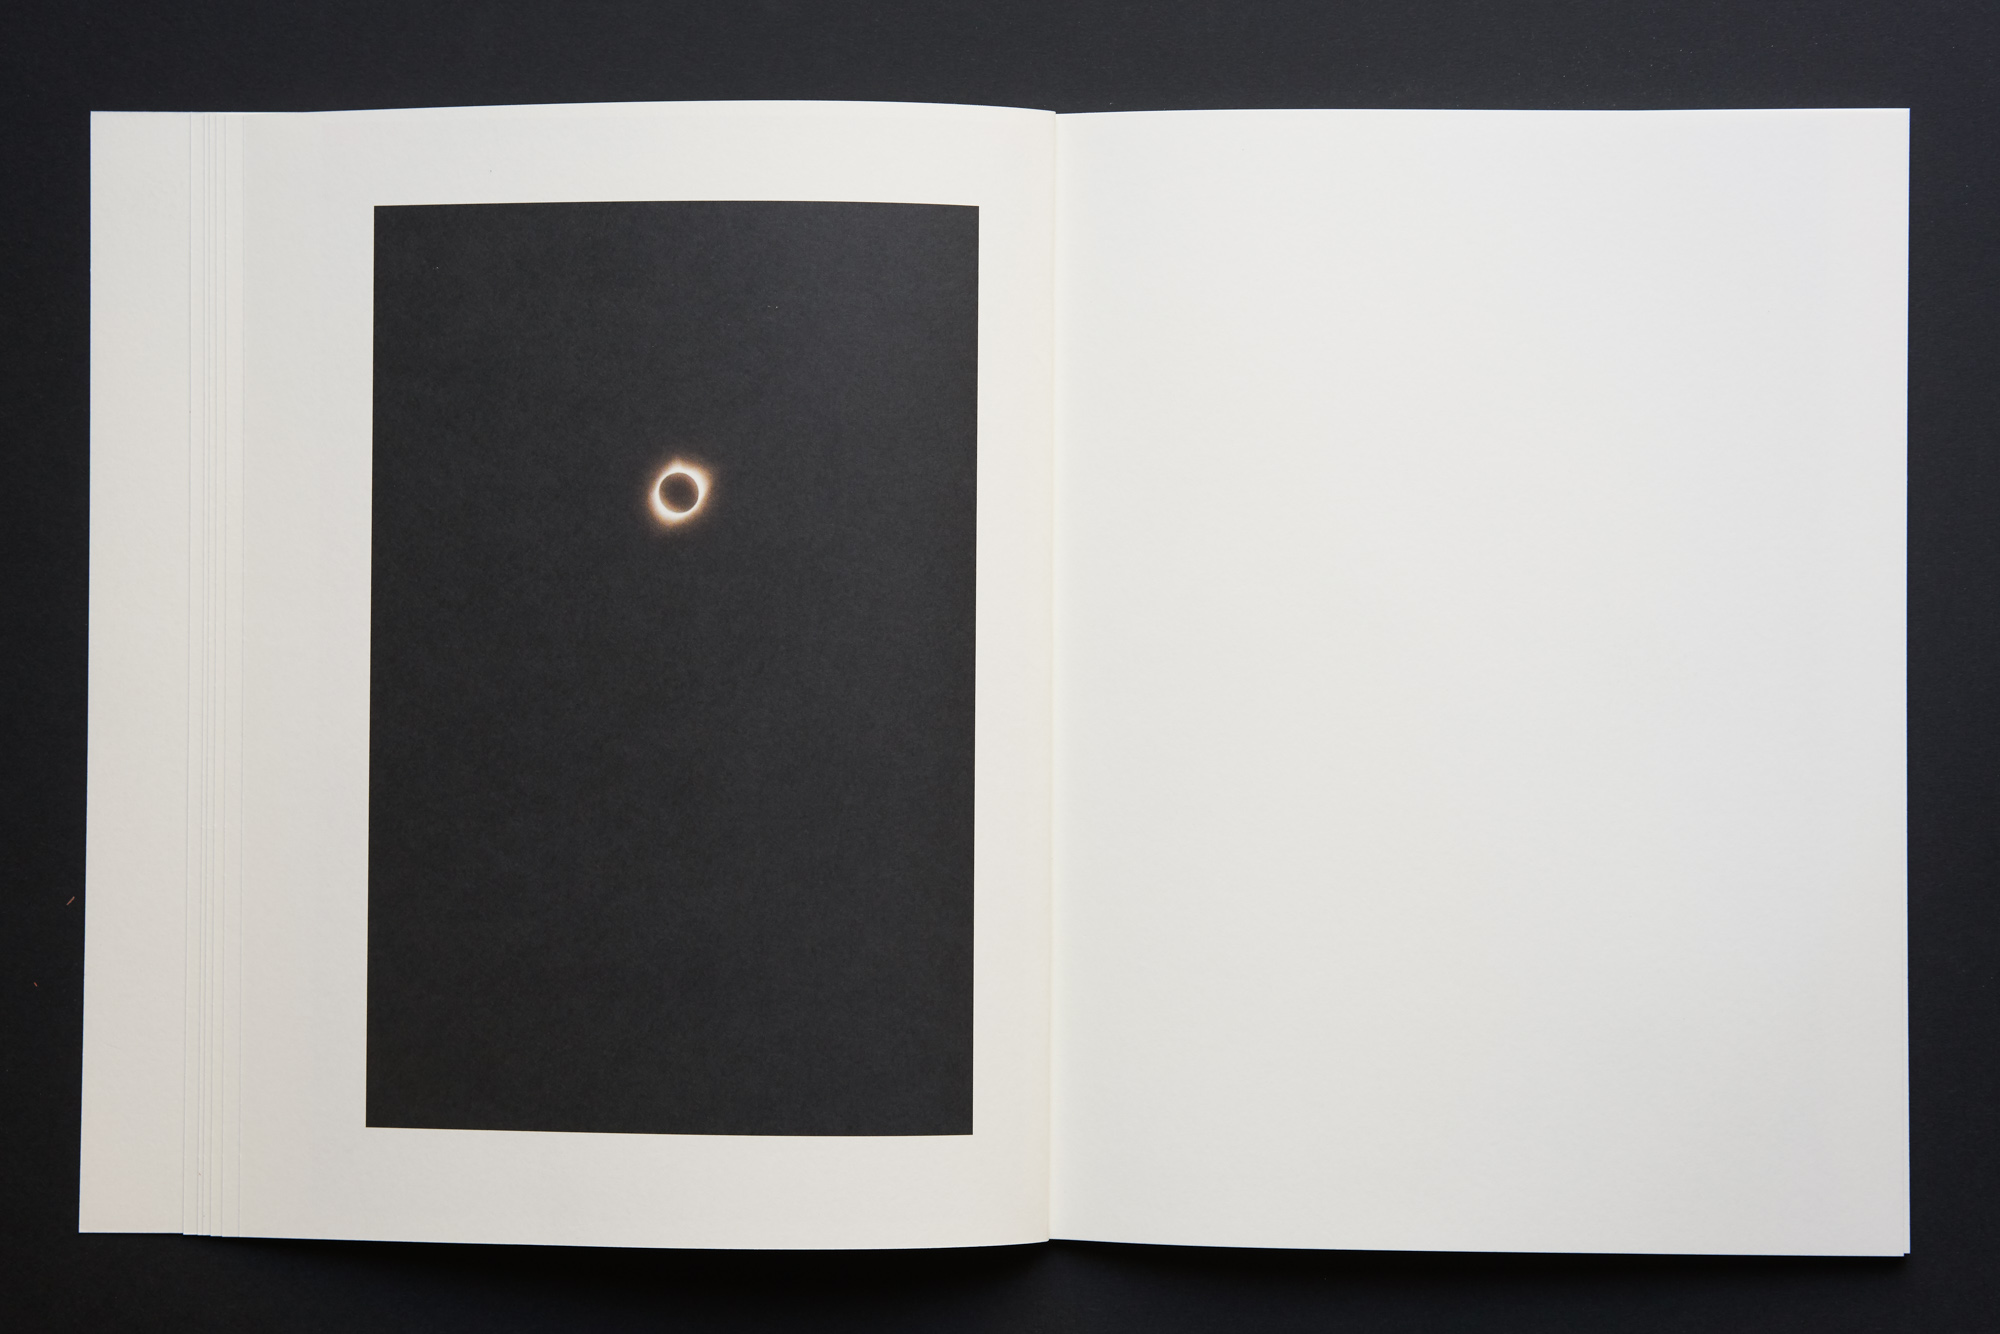 Christian André Strand Great American Eclipse, second edition